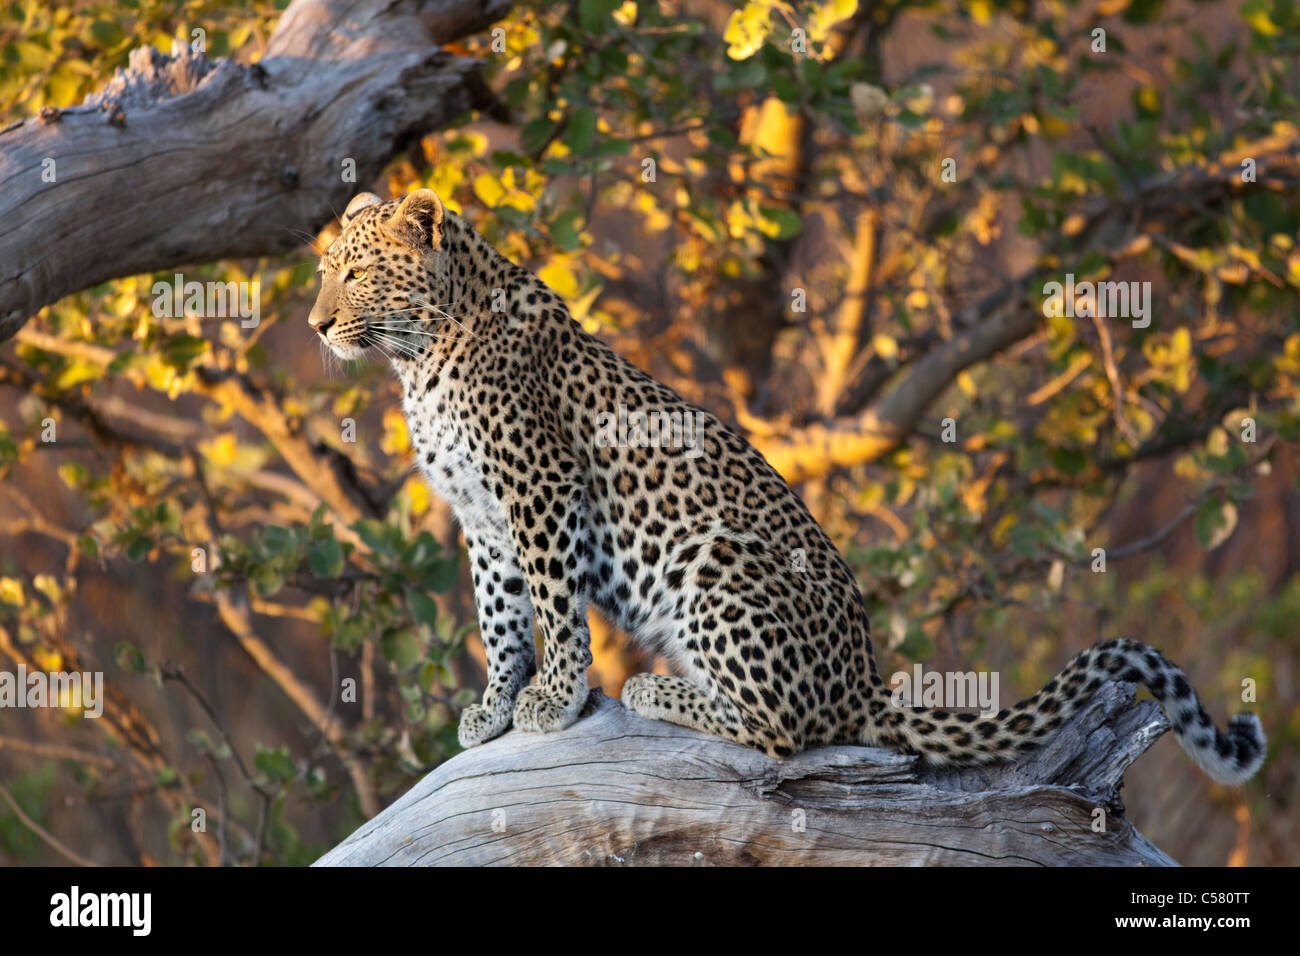 Leopard (Panthera pardus) rests on a fallen tree before heading on its evening hunt. Kwando Concession, Botswana - Stock Image